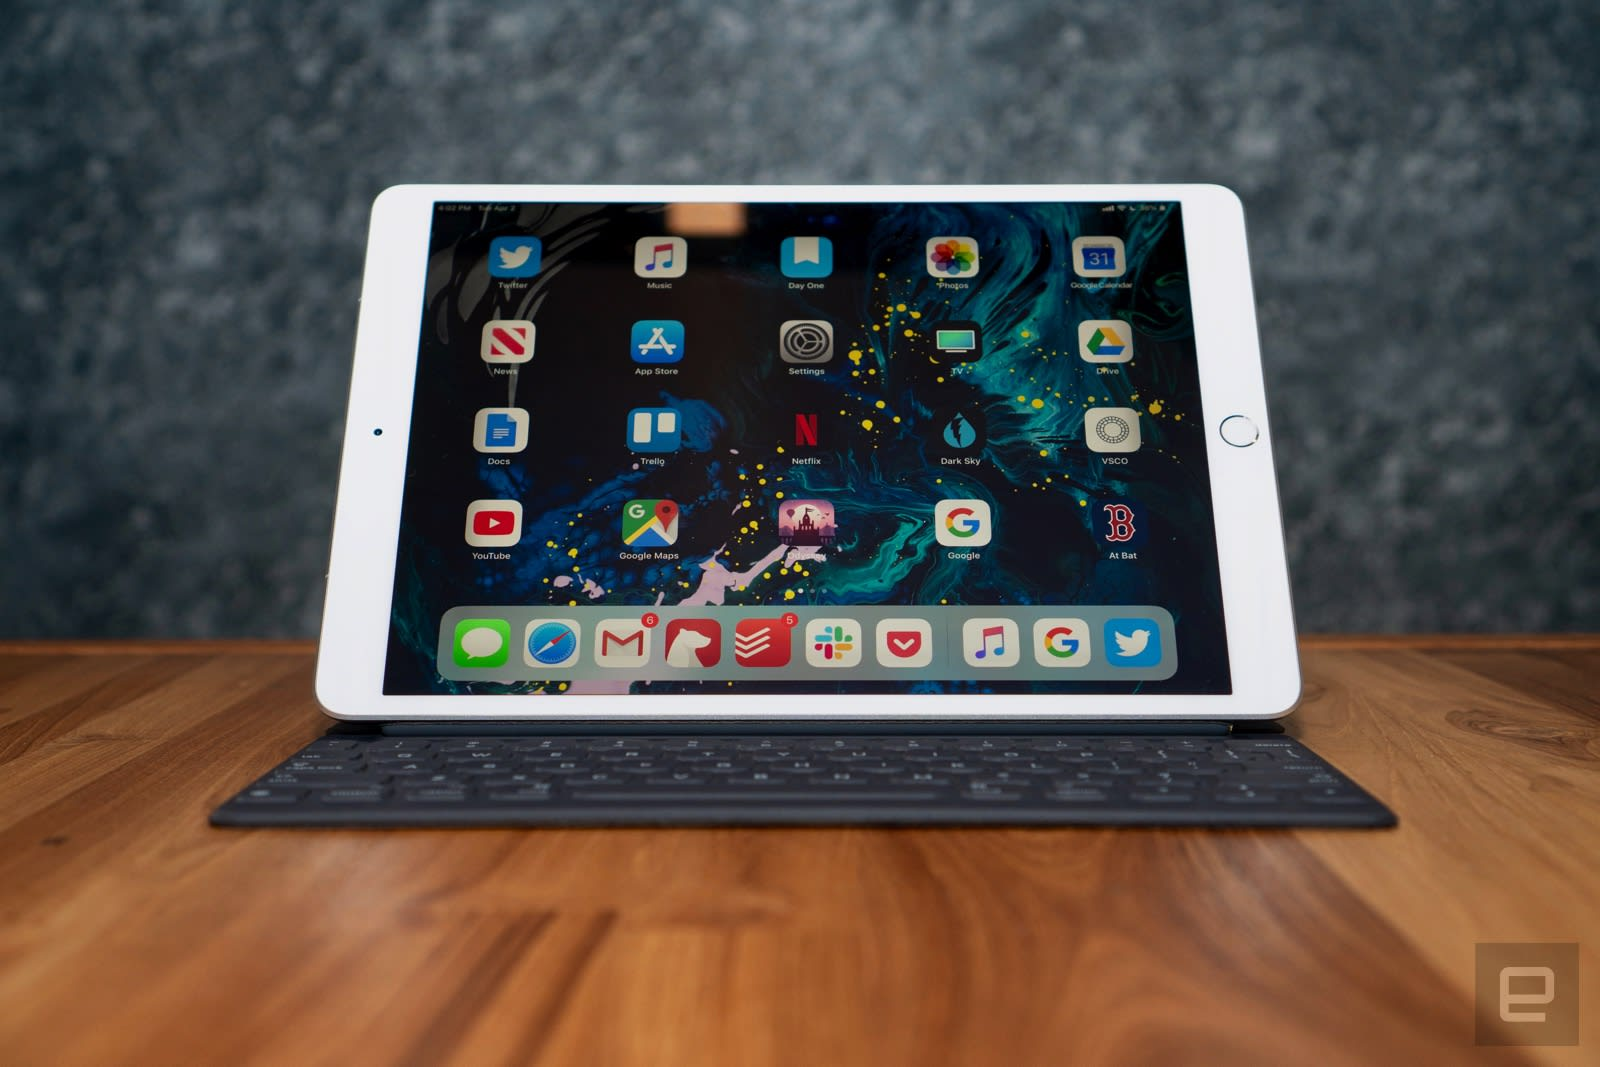 Apple iPad Air review (2019): Just right